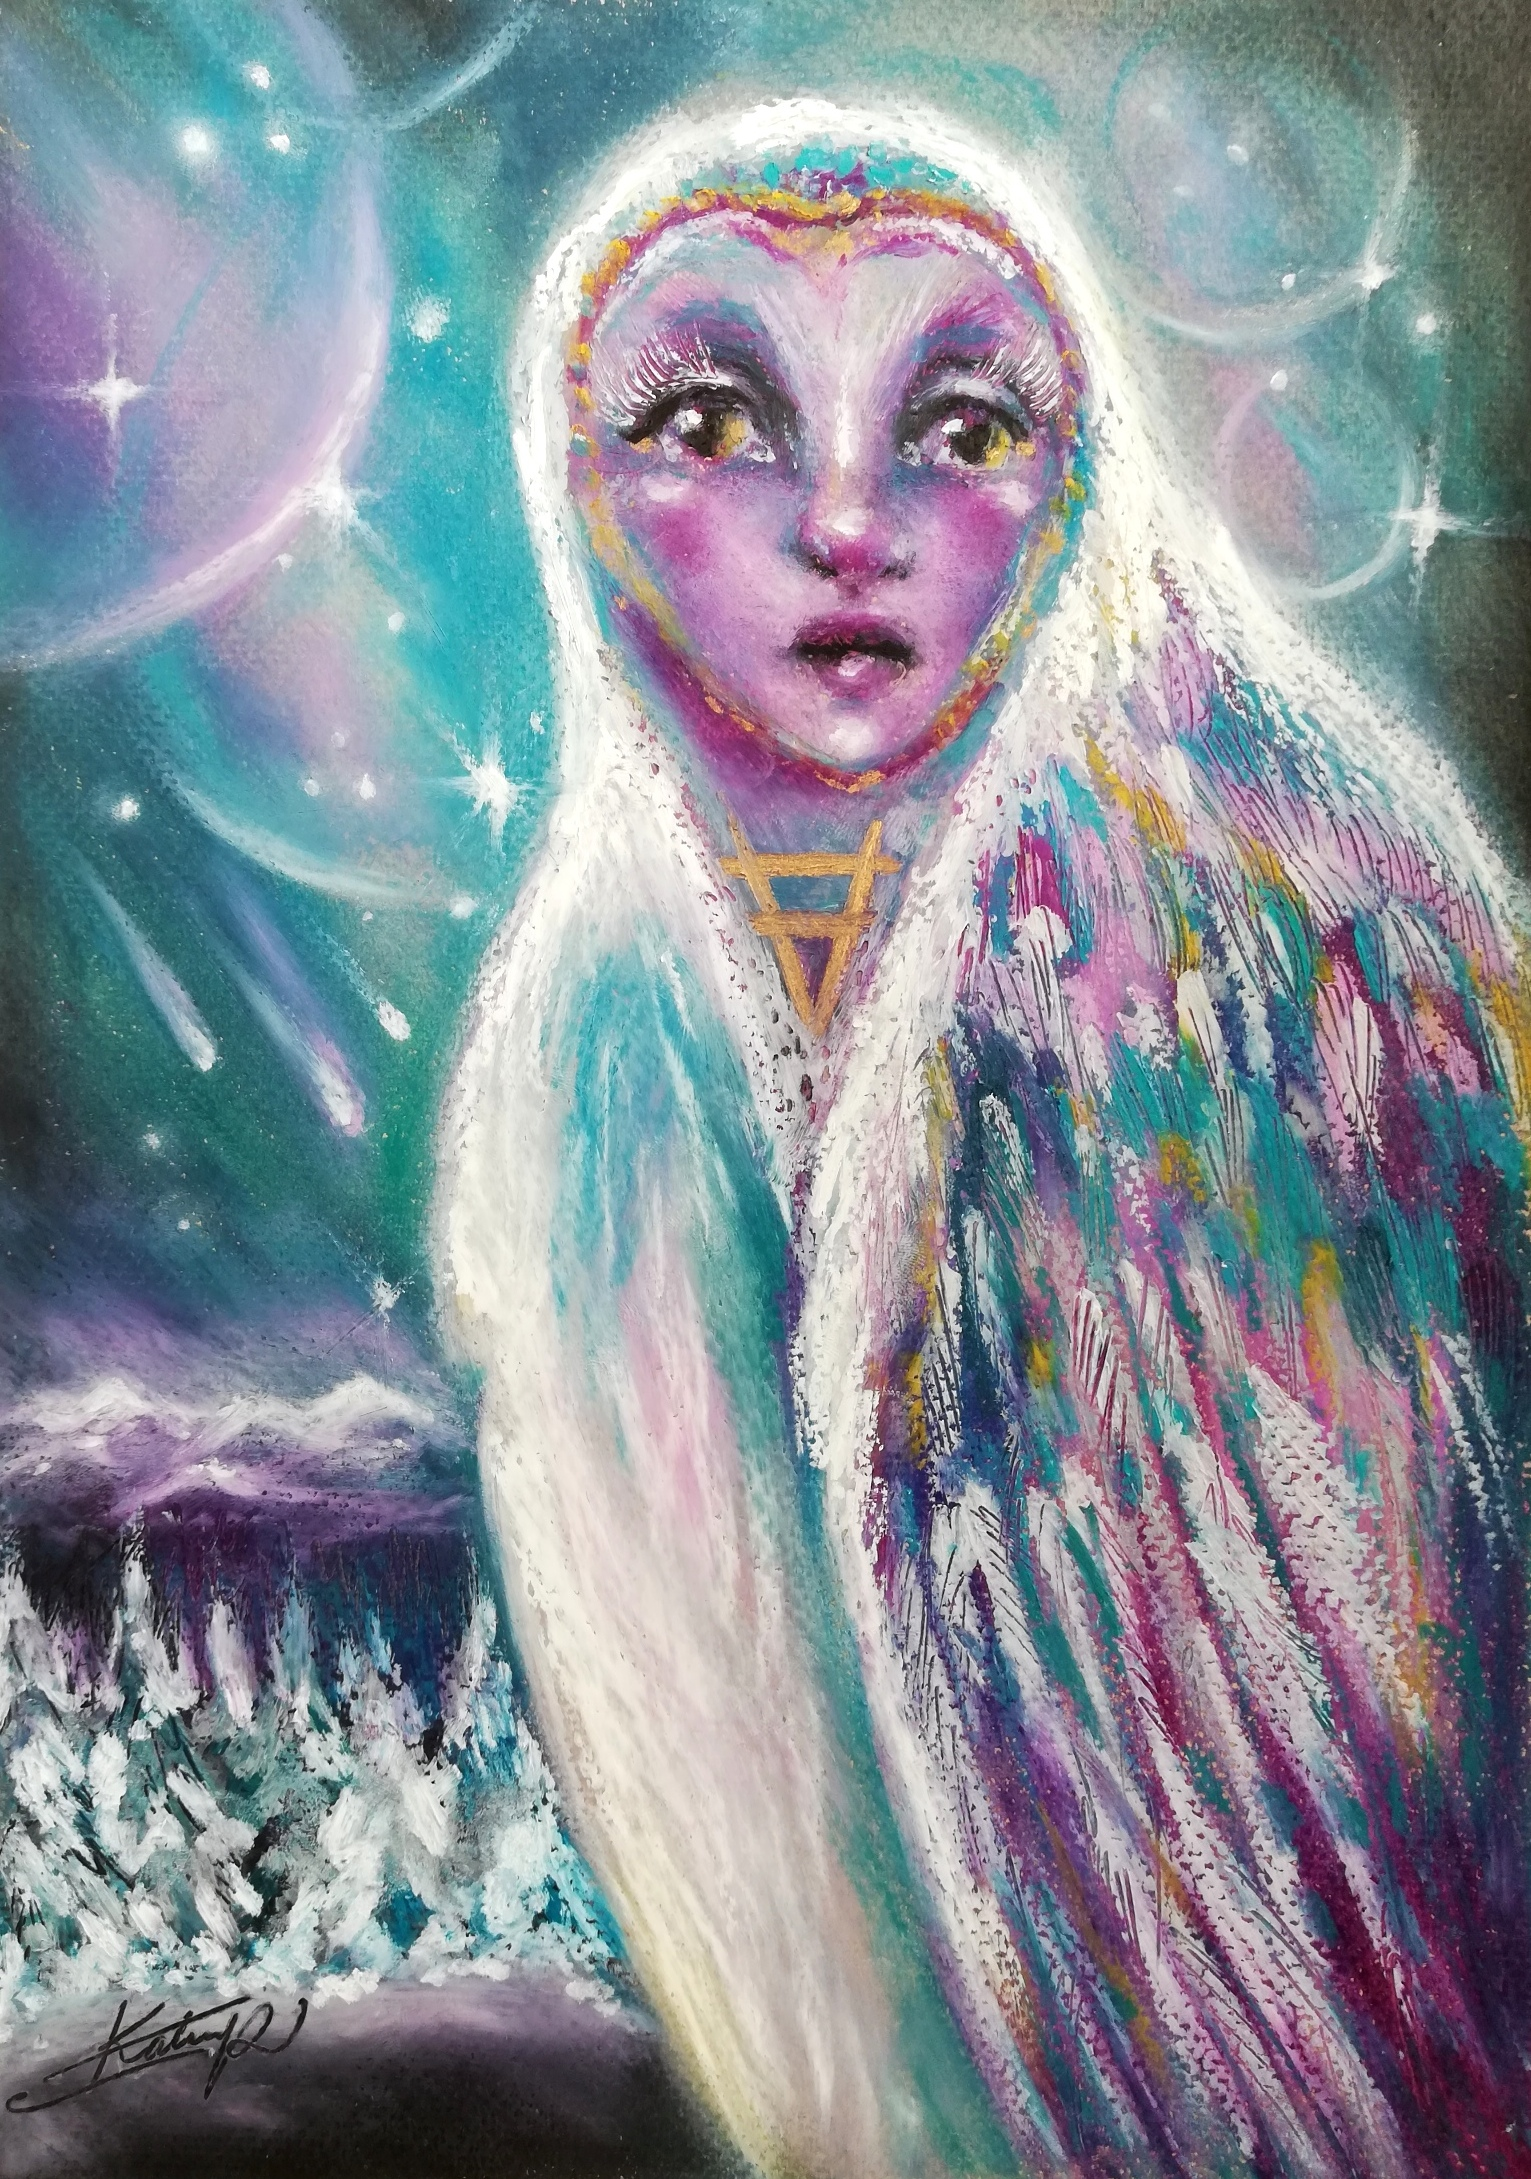 Earth guardian - Since a few years I have started working more closely with spirit animals and totems, and love to include them in my art. In this lesson we will create our spirit animal guardian with oil pastels. I will share my blending techniques, and how I like to use non-traditional colors and elements to create a story. We will work very intuitively, staying open to any changes or directions our intuition takes us. By painting our spirit animal we will be welcoming it's guidance and magic in our lives.